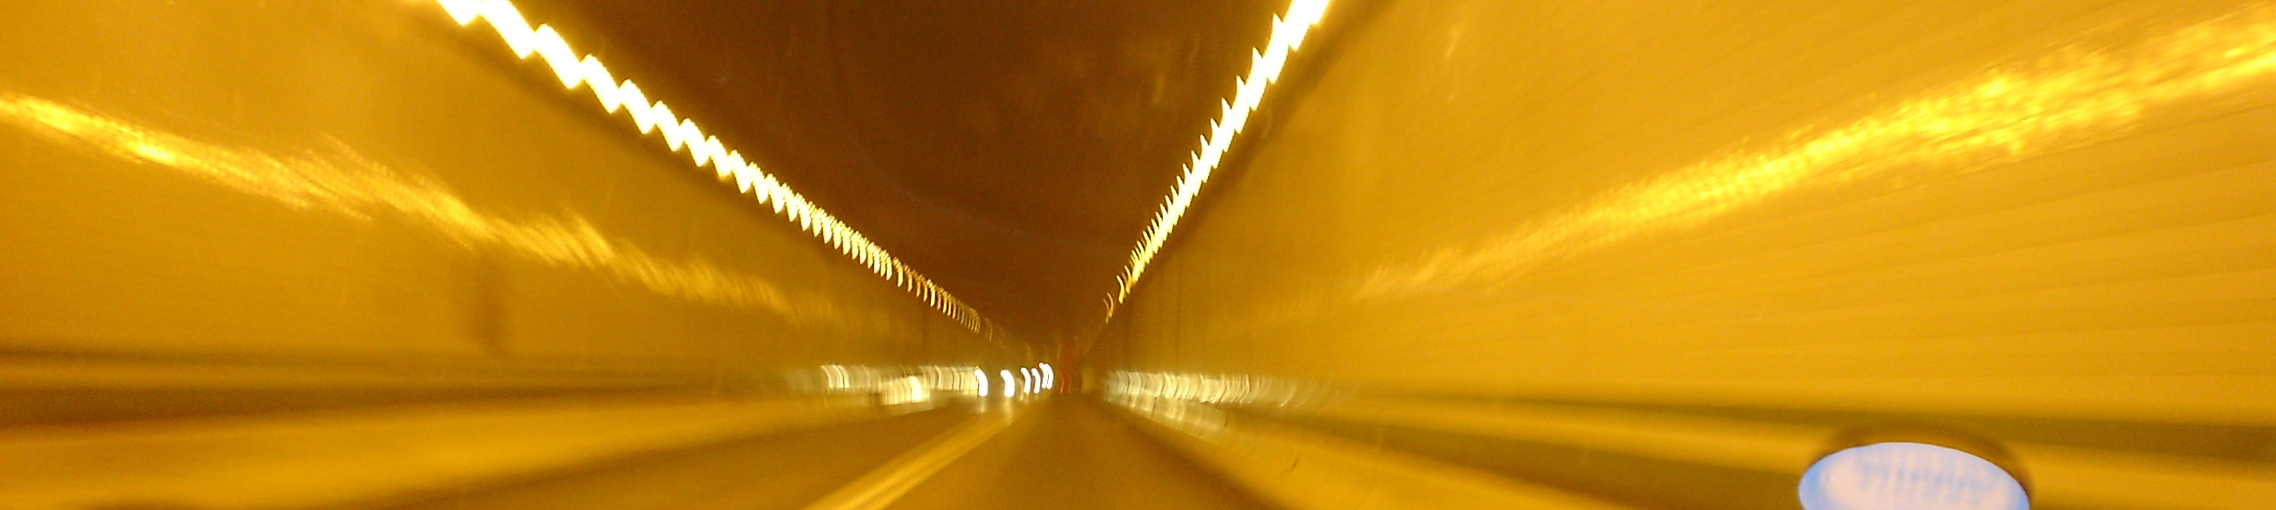 http://www.bartlebysnopes.com/_wizardimages/picture%20of%20tunnel%20take%202.JPG